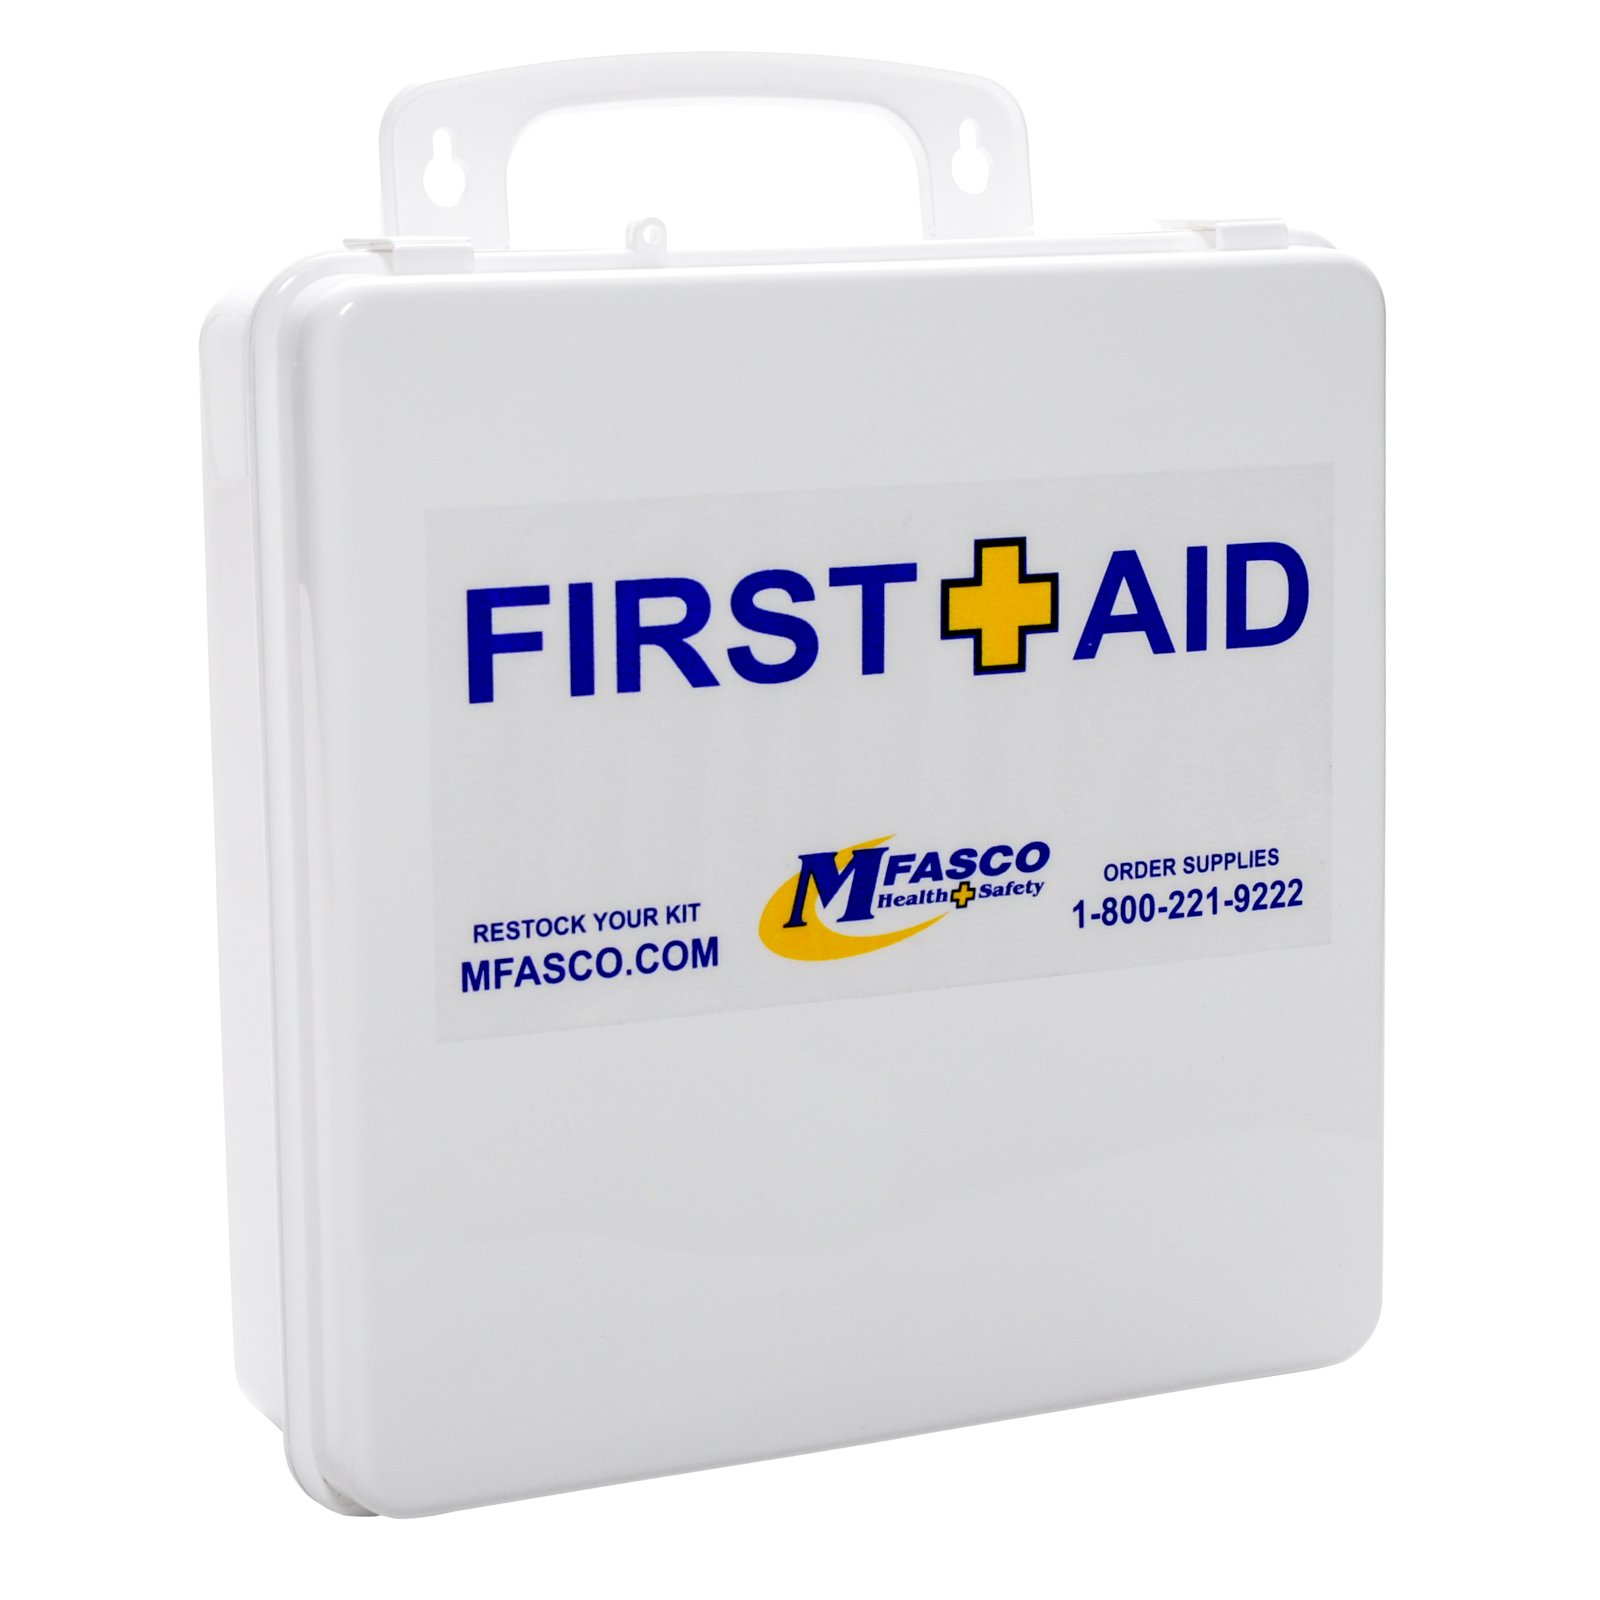 OSHA Class A Restaurant First Aid Kit With Blue Bandages Plastic Box by MFASCO